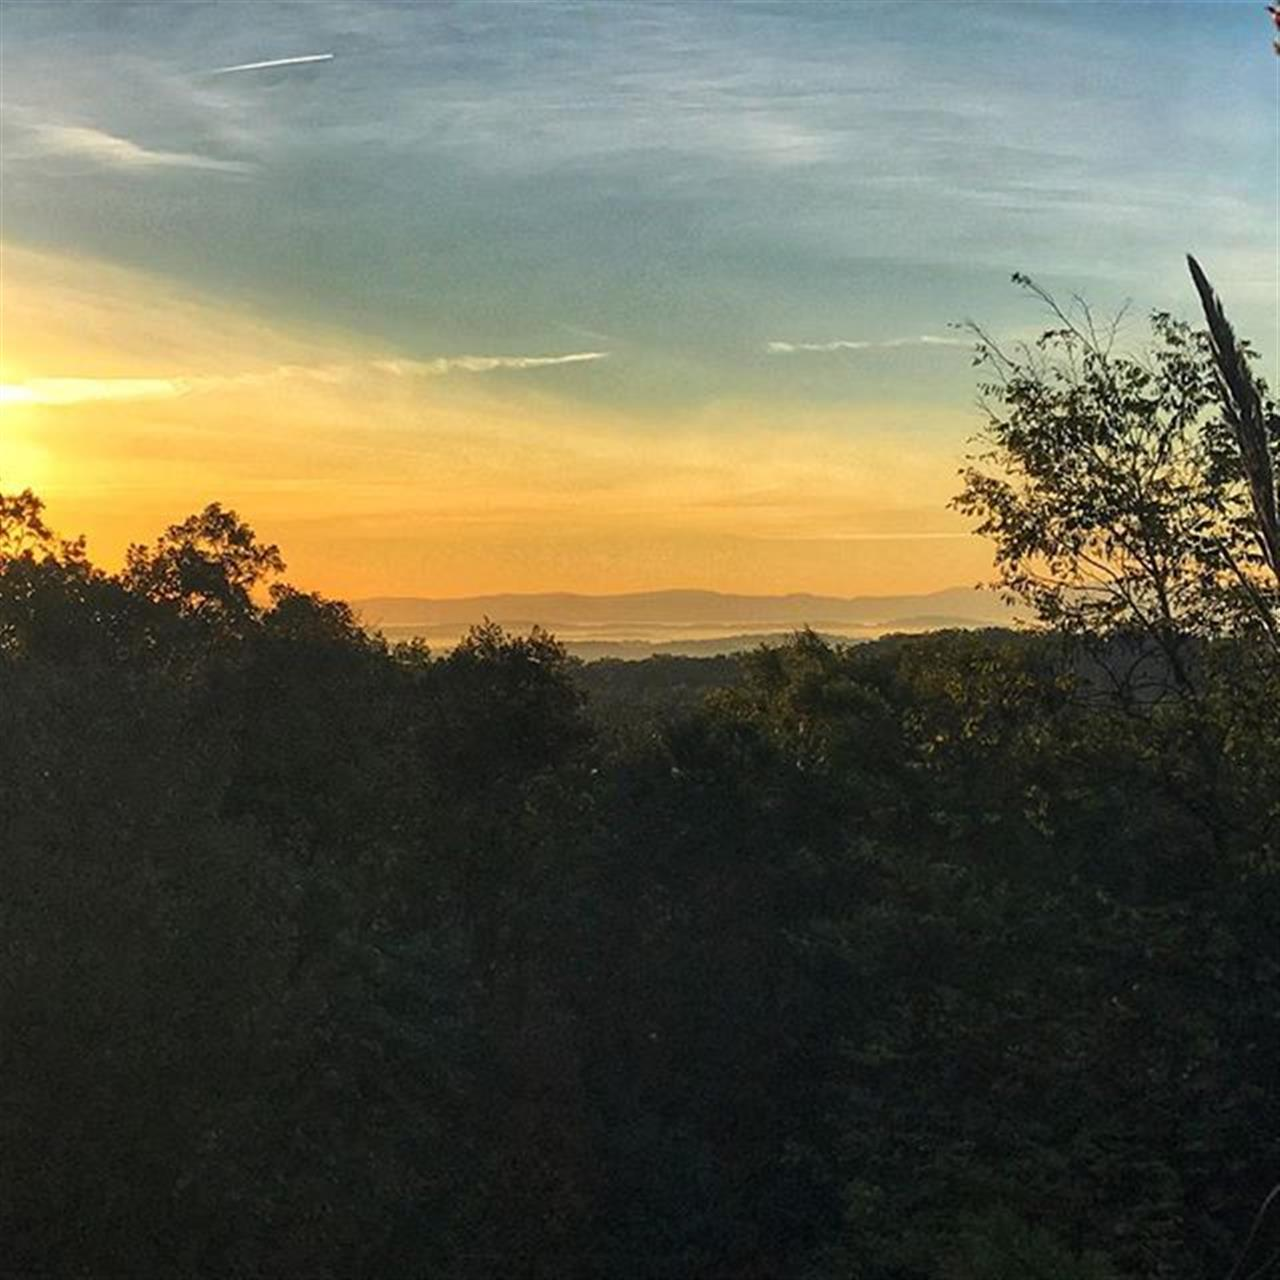 The best part of meeting an appraiser at 8AM on Saturday is that I get to see this amazing view of the sunrise. #sunrise #virginiaskies #virginia #dayton #realtor #leadingrelocal